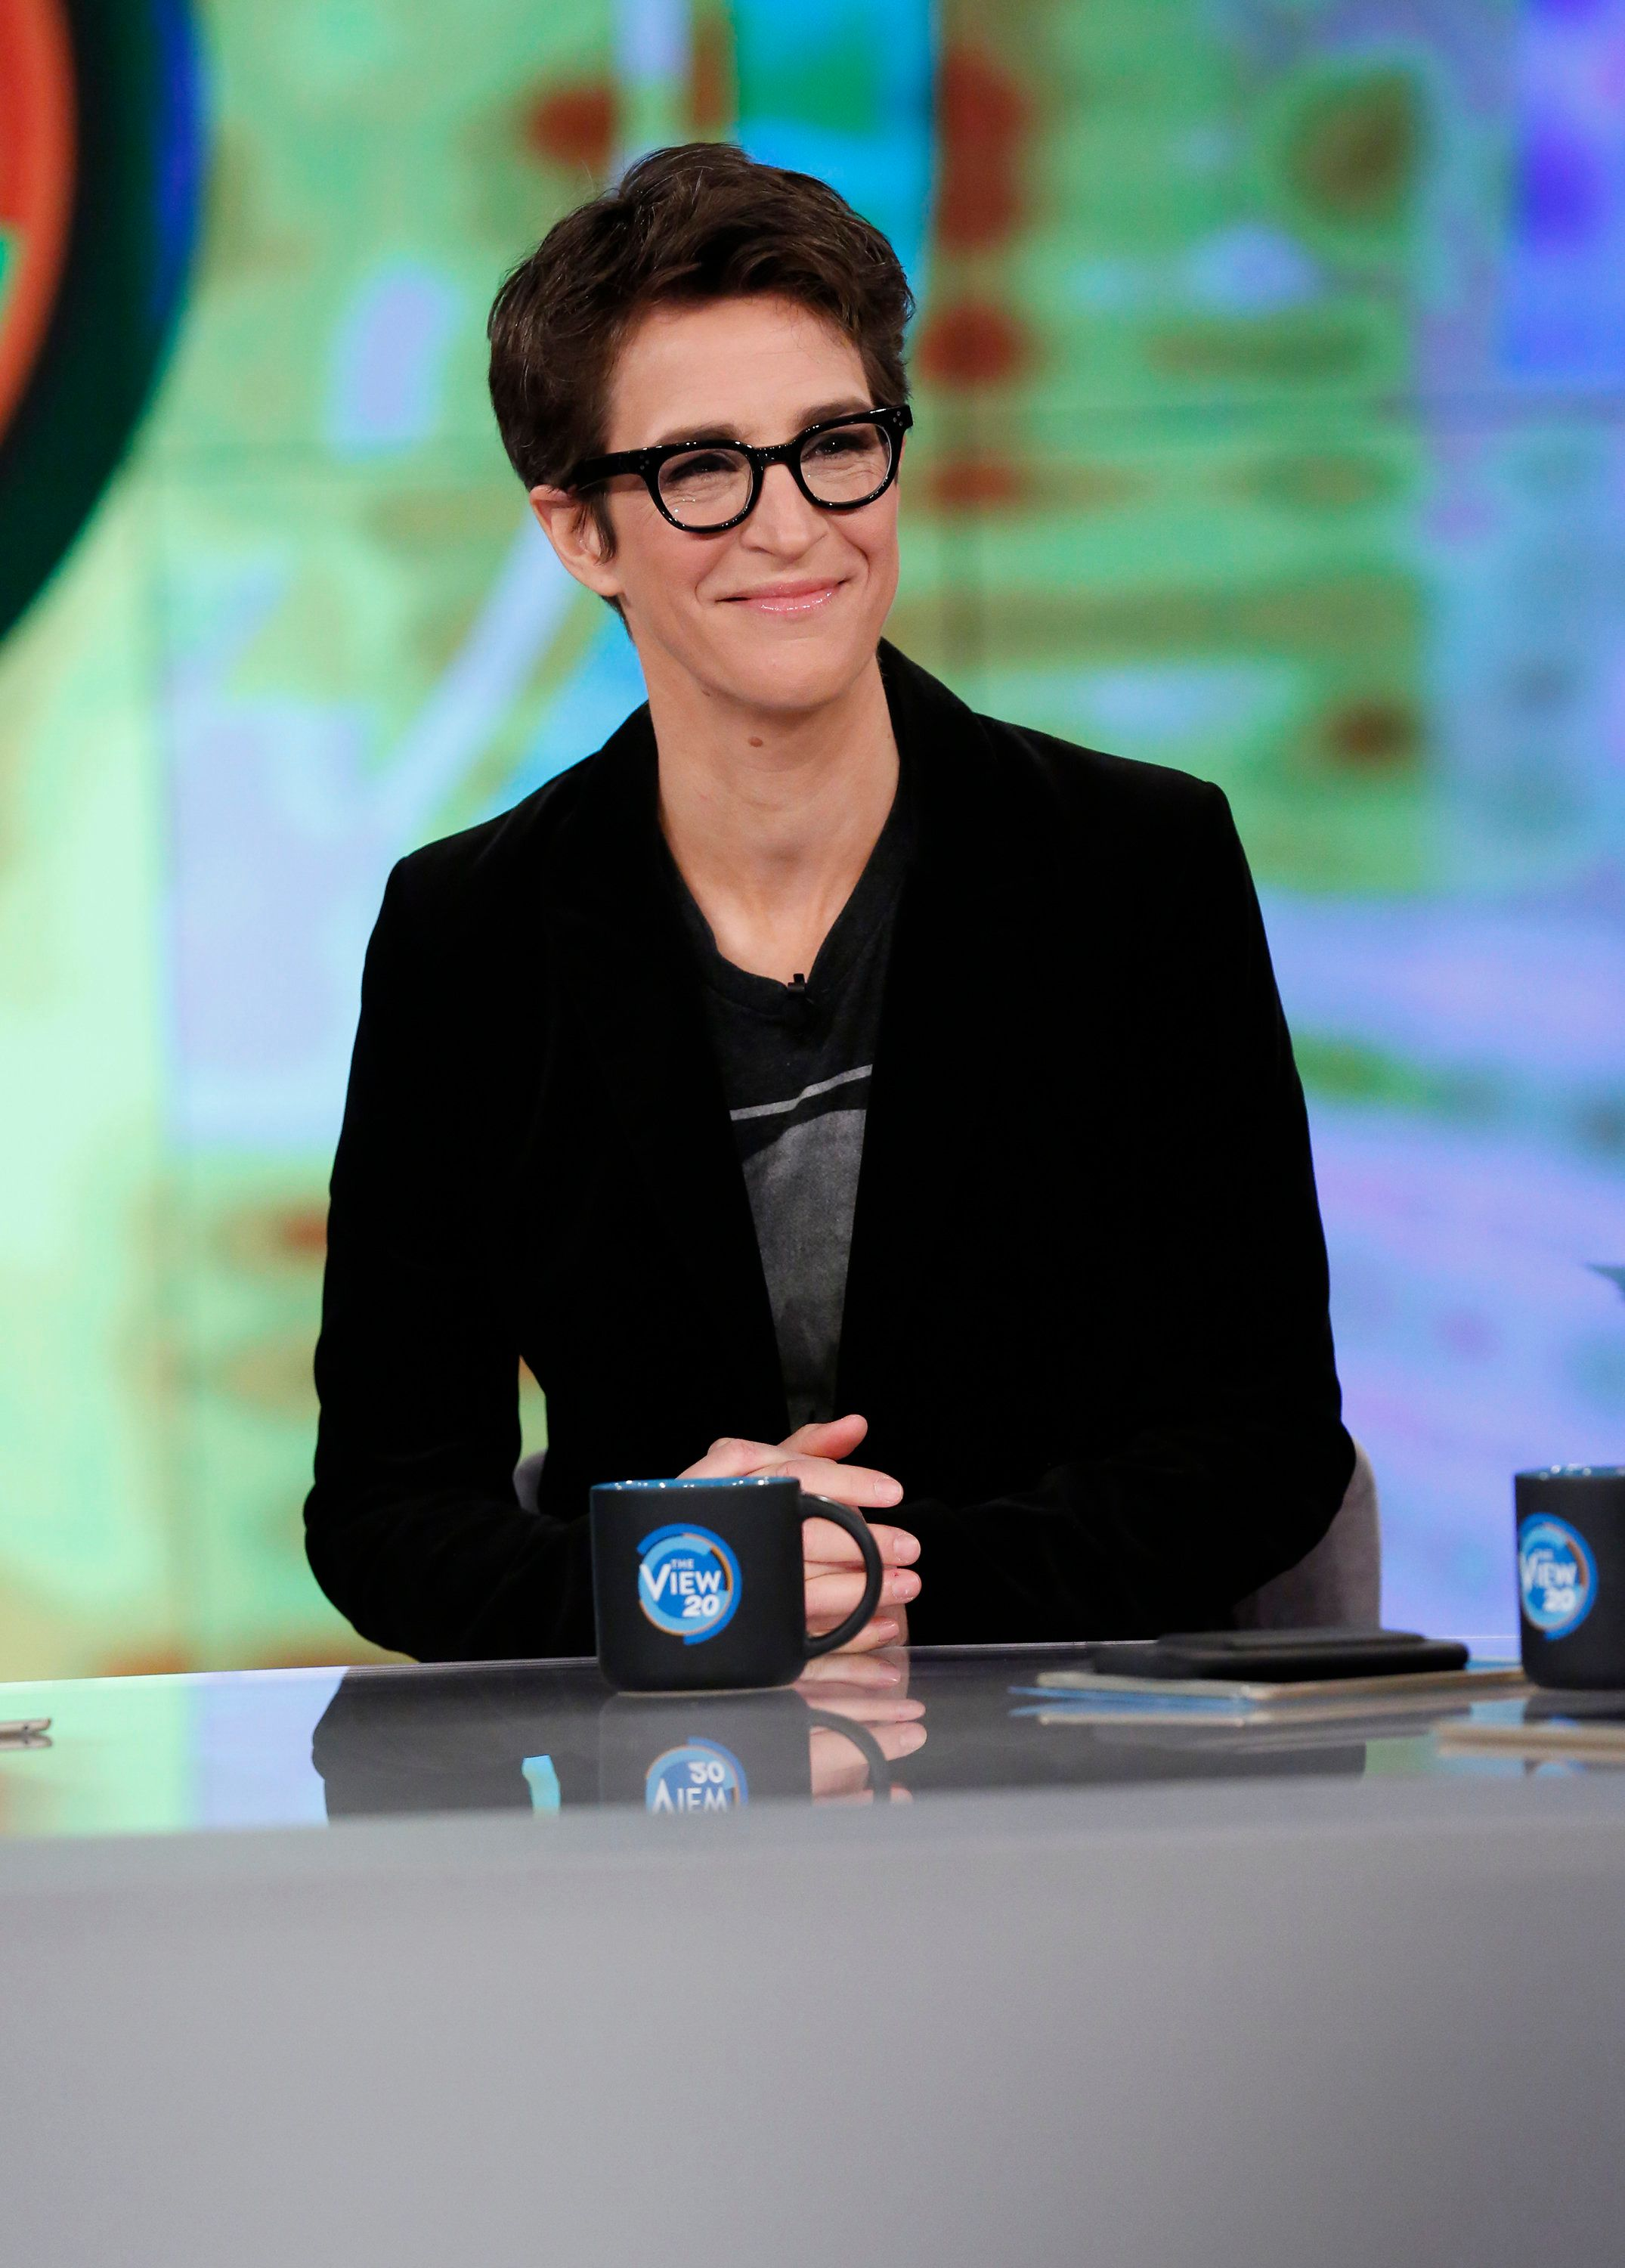 THE VIEW - Rachel Maddow is the guest today, Wednesday, March 22, 2017 on ABC's 'The View.'   'The View' airs Monday-Friday (11:00 am-12:00 pm, ET) on the ABC Television Network.     (Photo by Heidi Gutman/ABC via Getty Images)  RACHEL MADDOW